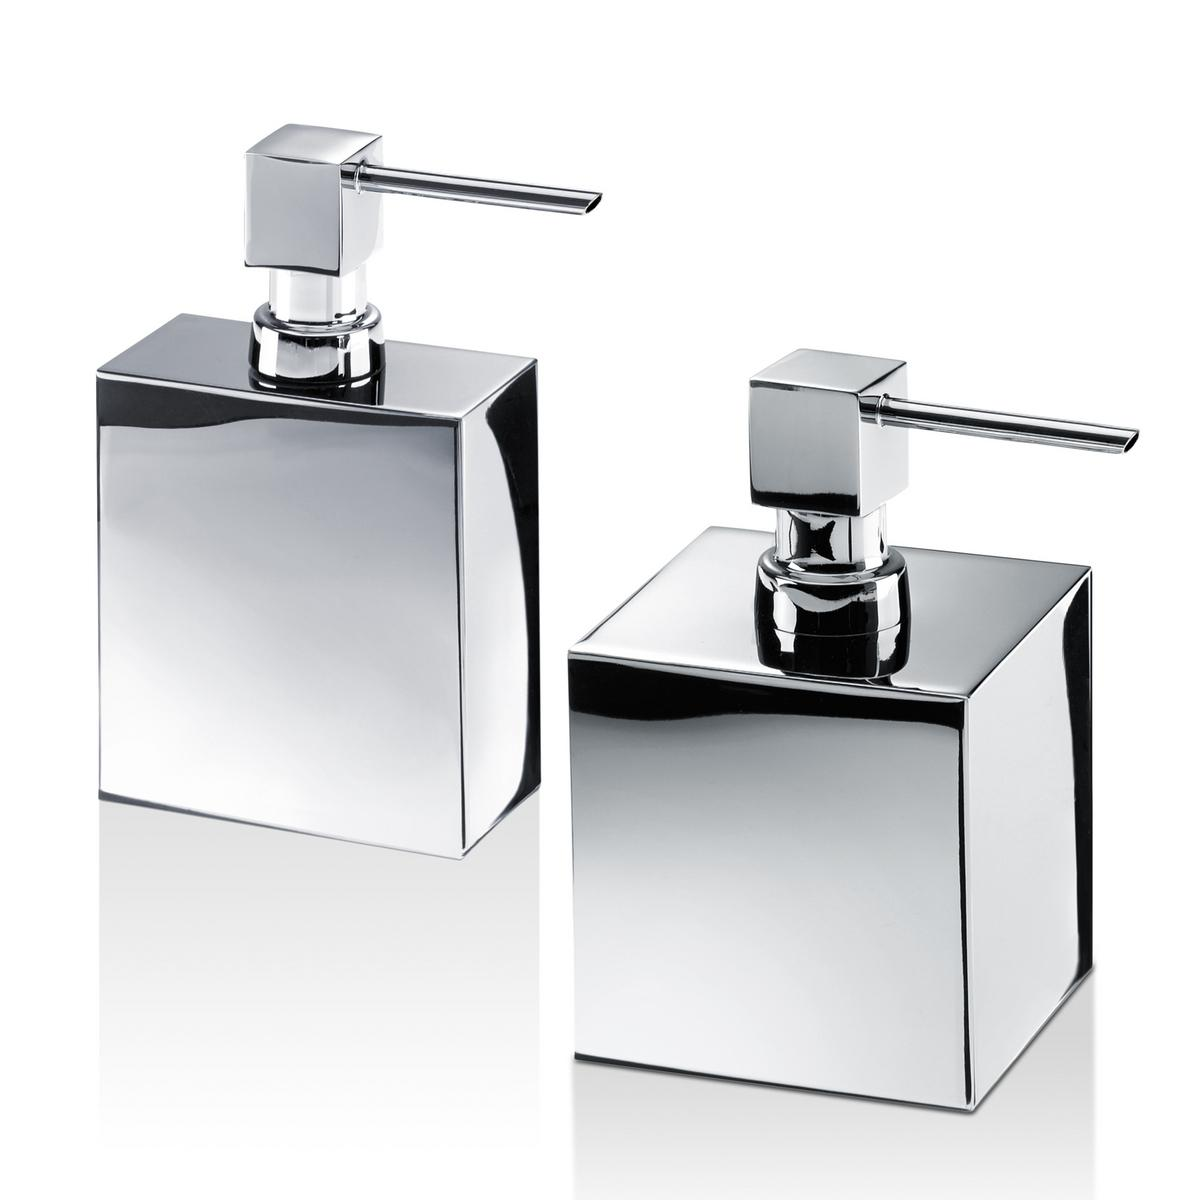 Decor Walther Derby Soap Dispensers